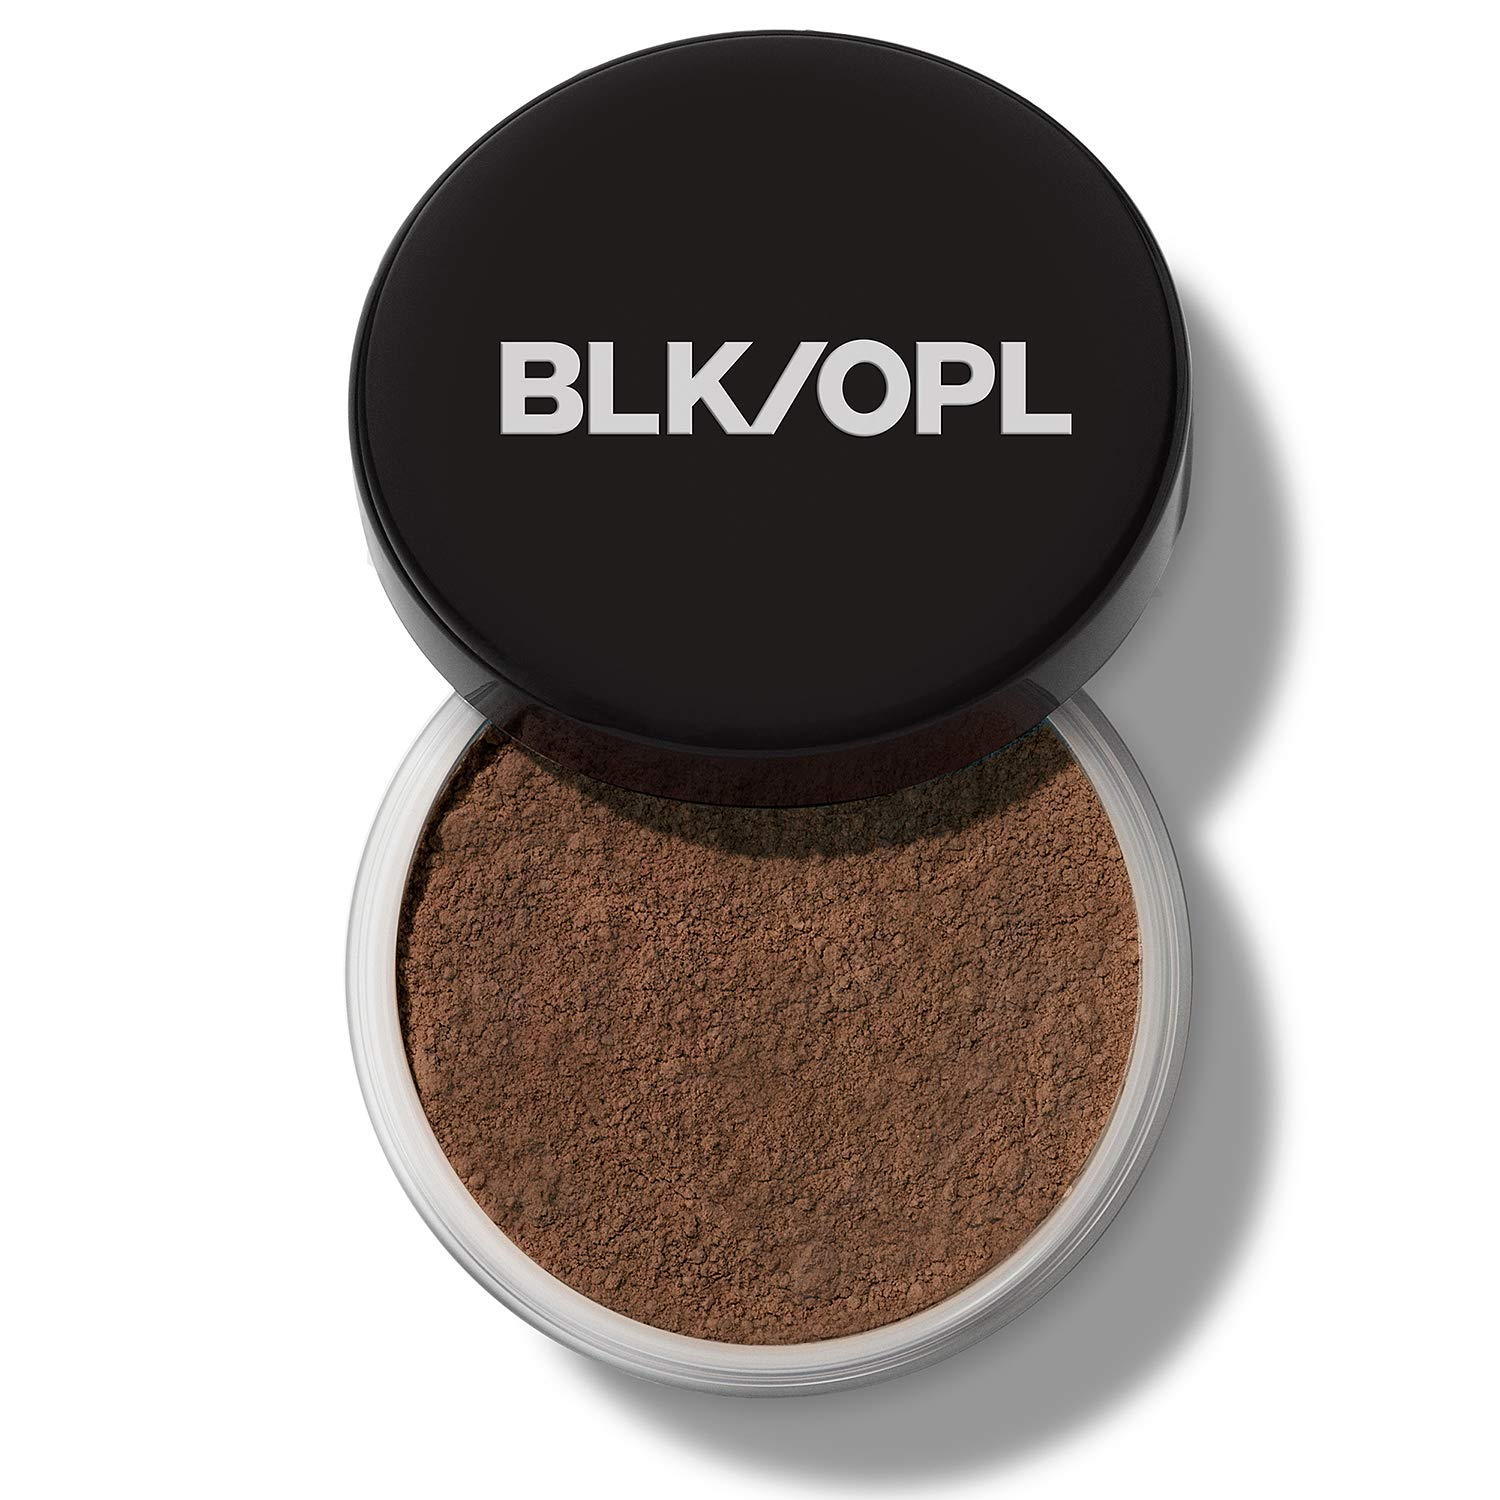 BLK/OPL True Color Soft Velvet Finishing Powder